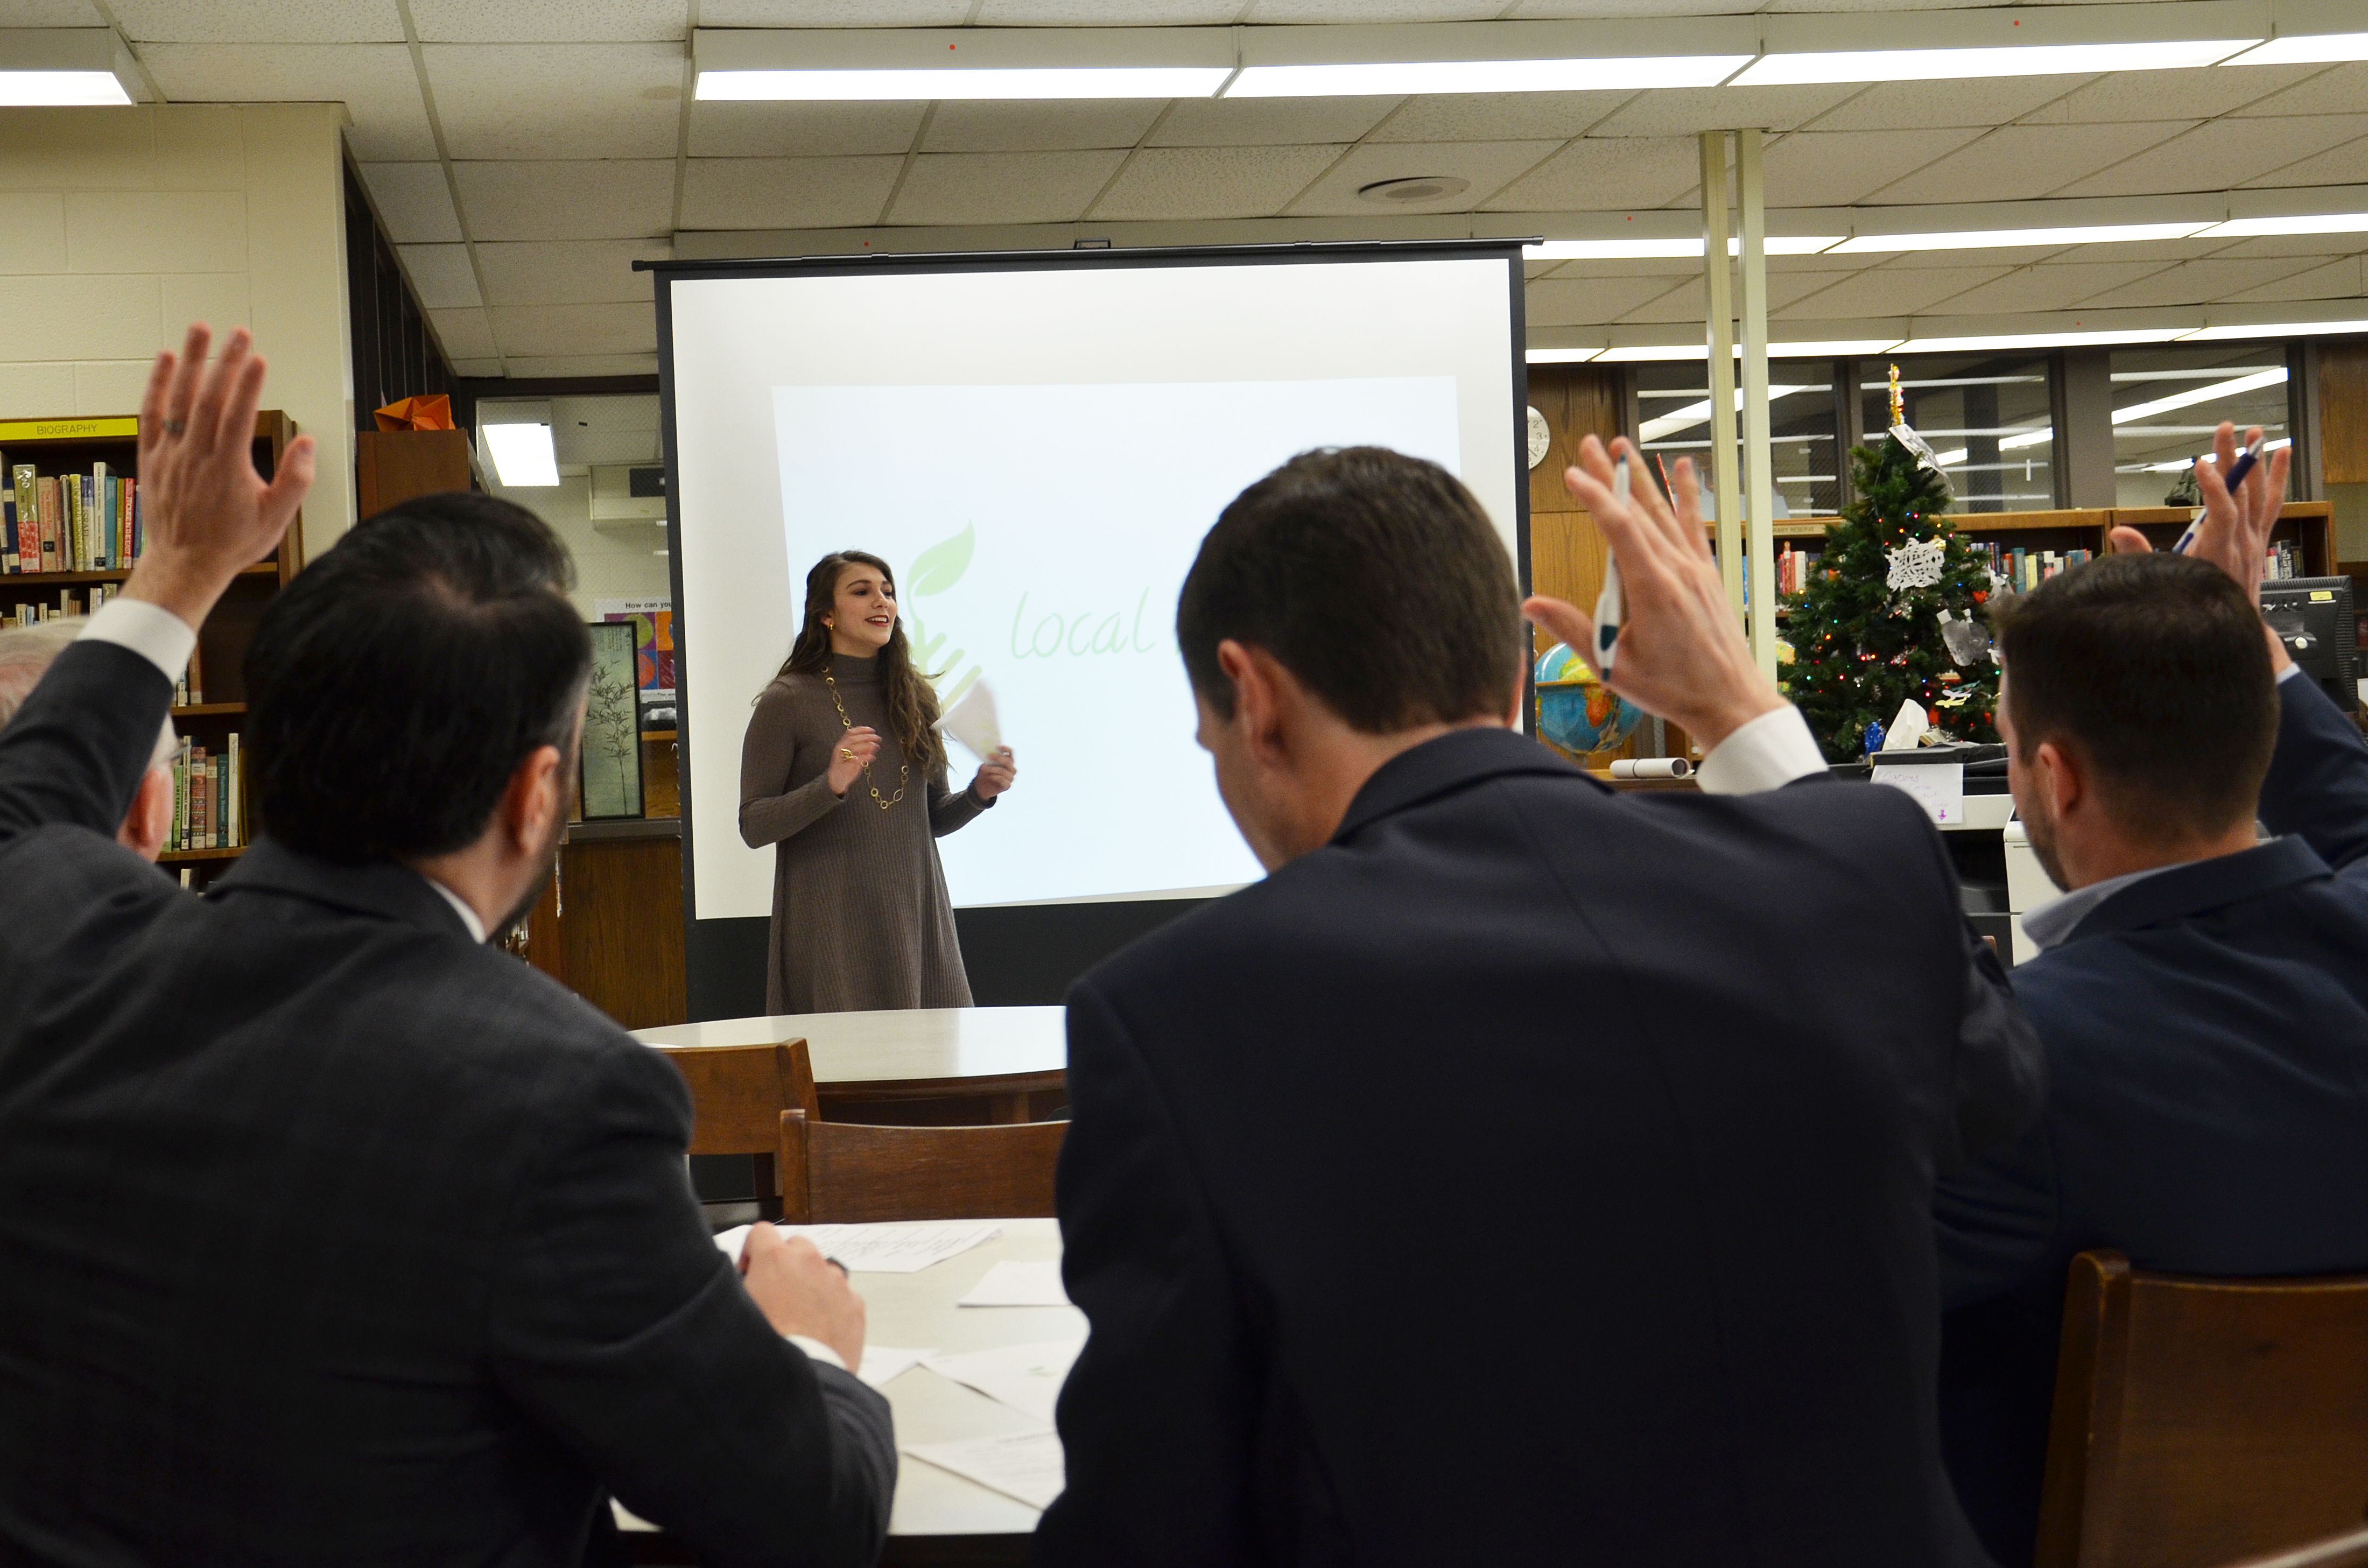 Bartleby Entrepreneurship student presents to board of local experts.